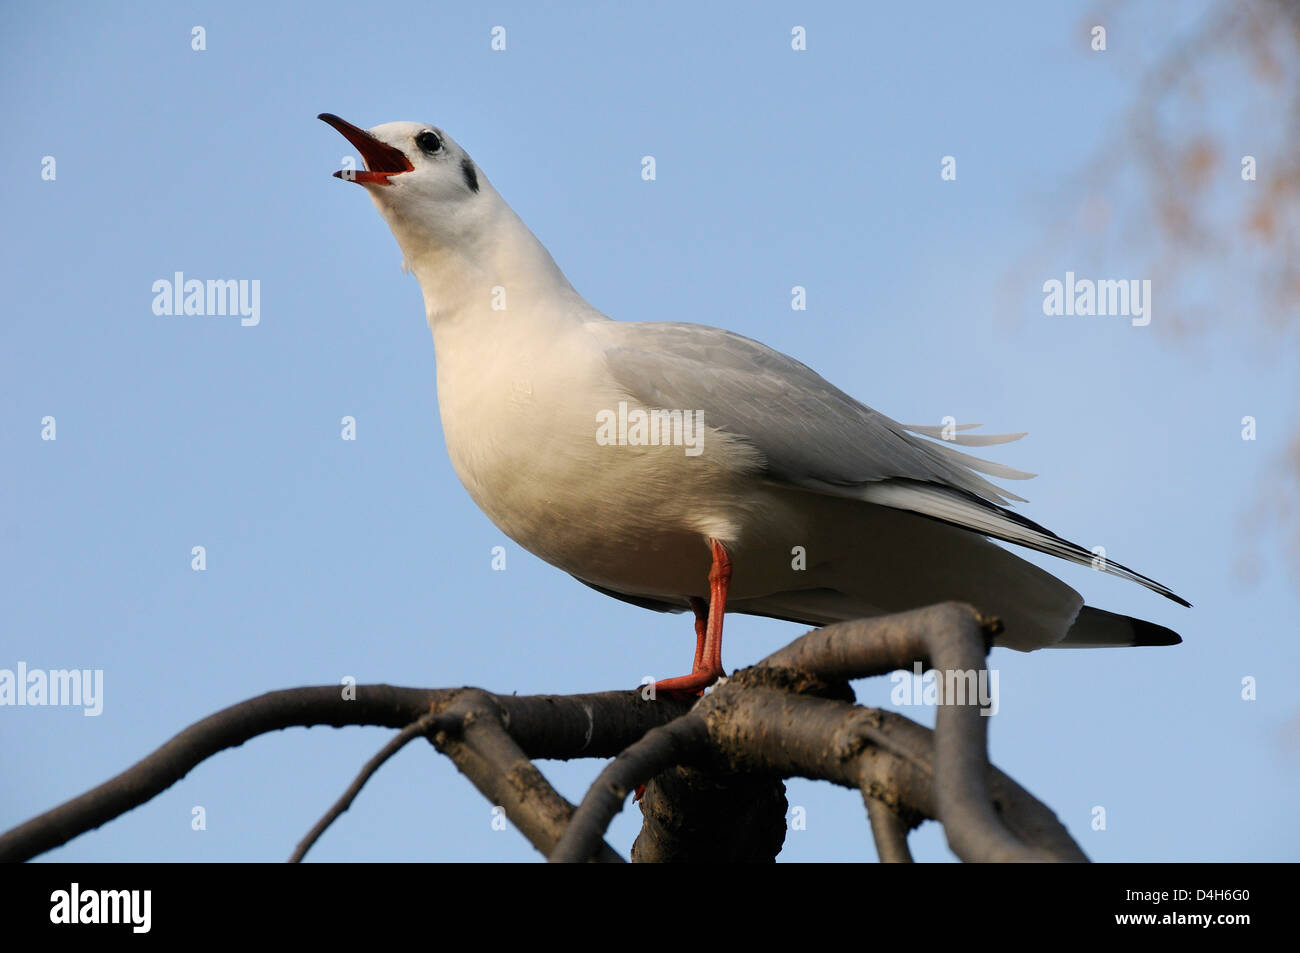 Black-headed gull (Larus ridibundus) in winter plumage calling from tree branch, St. James's Park, London, England, - Stock Image